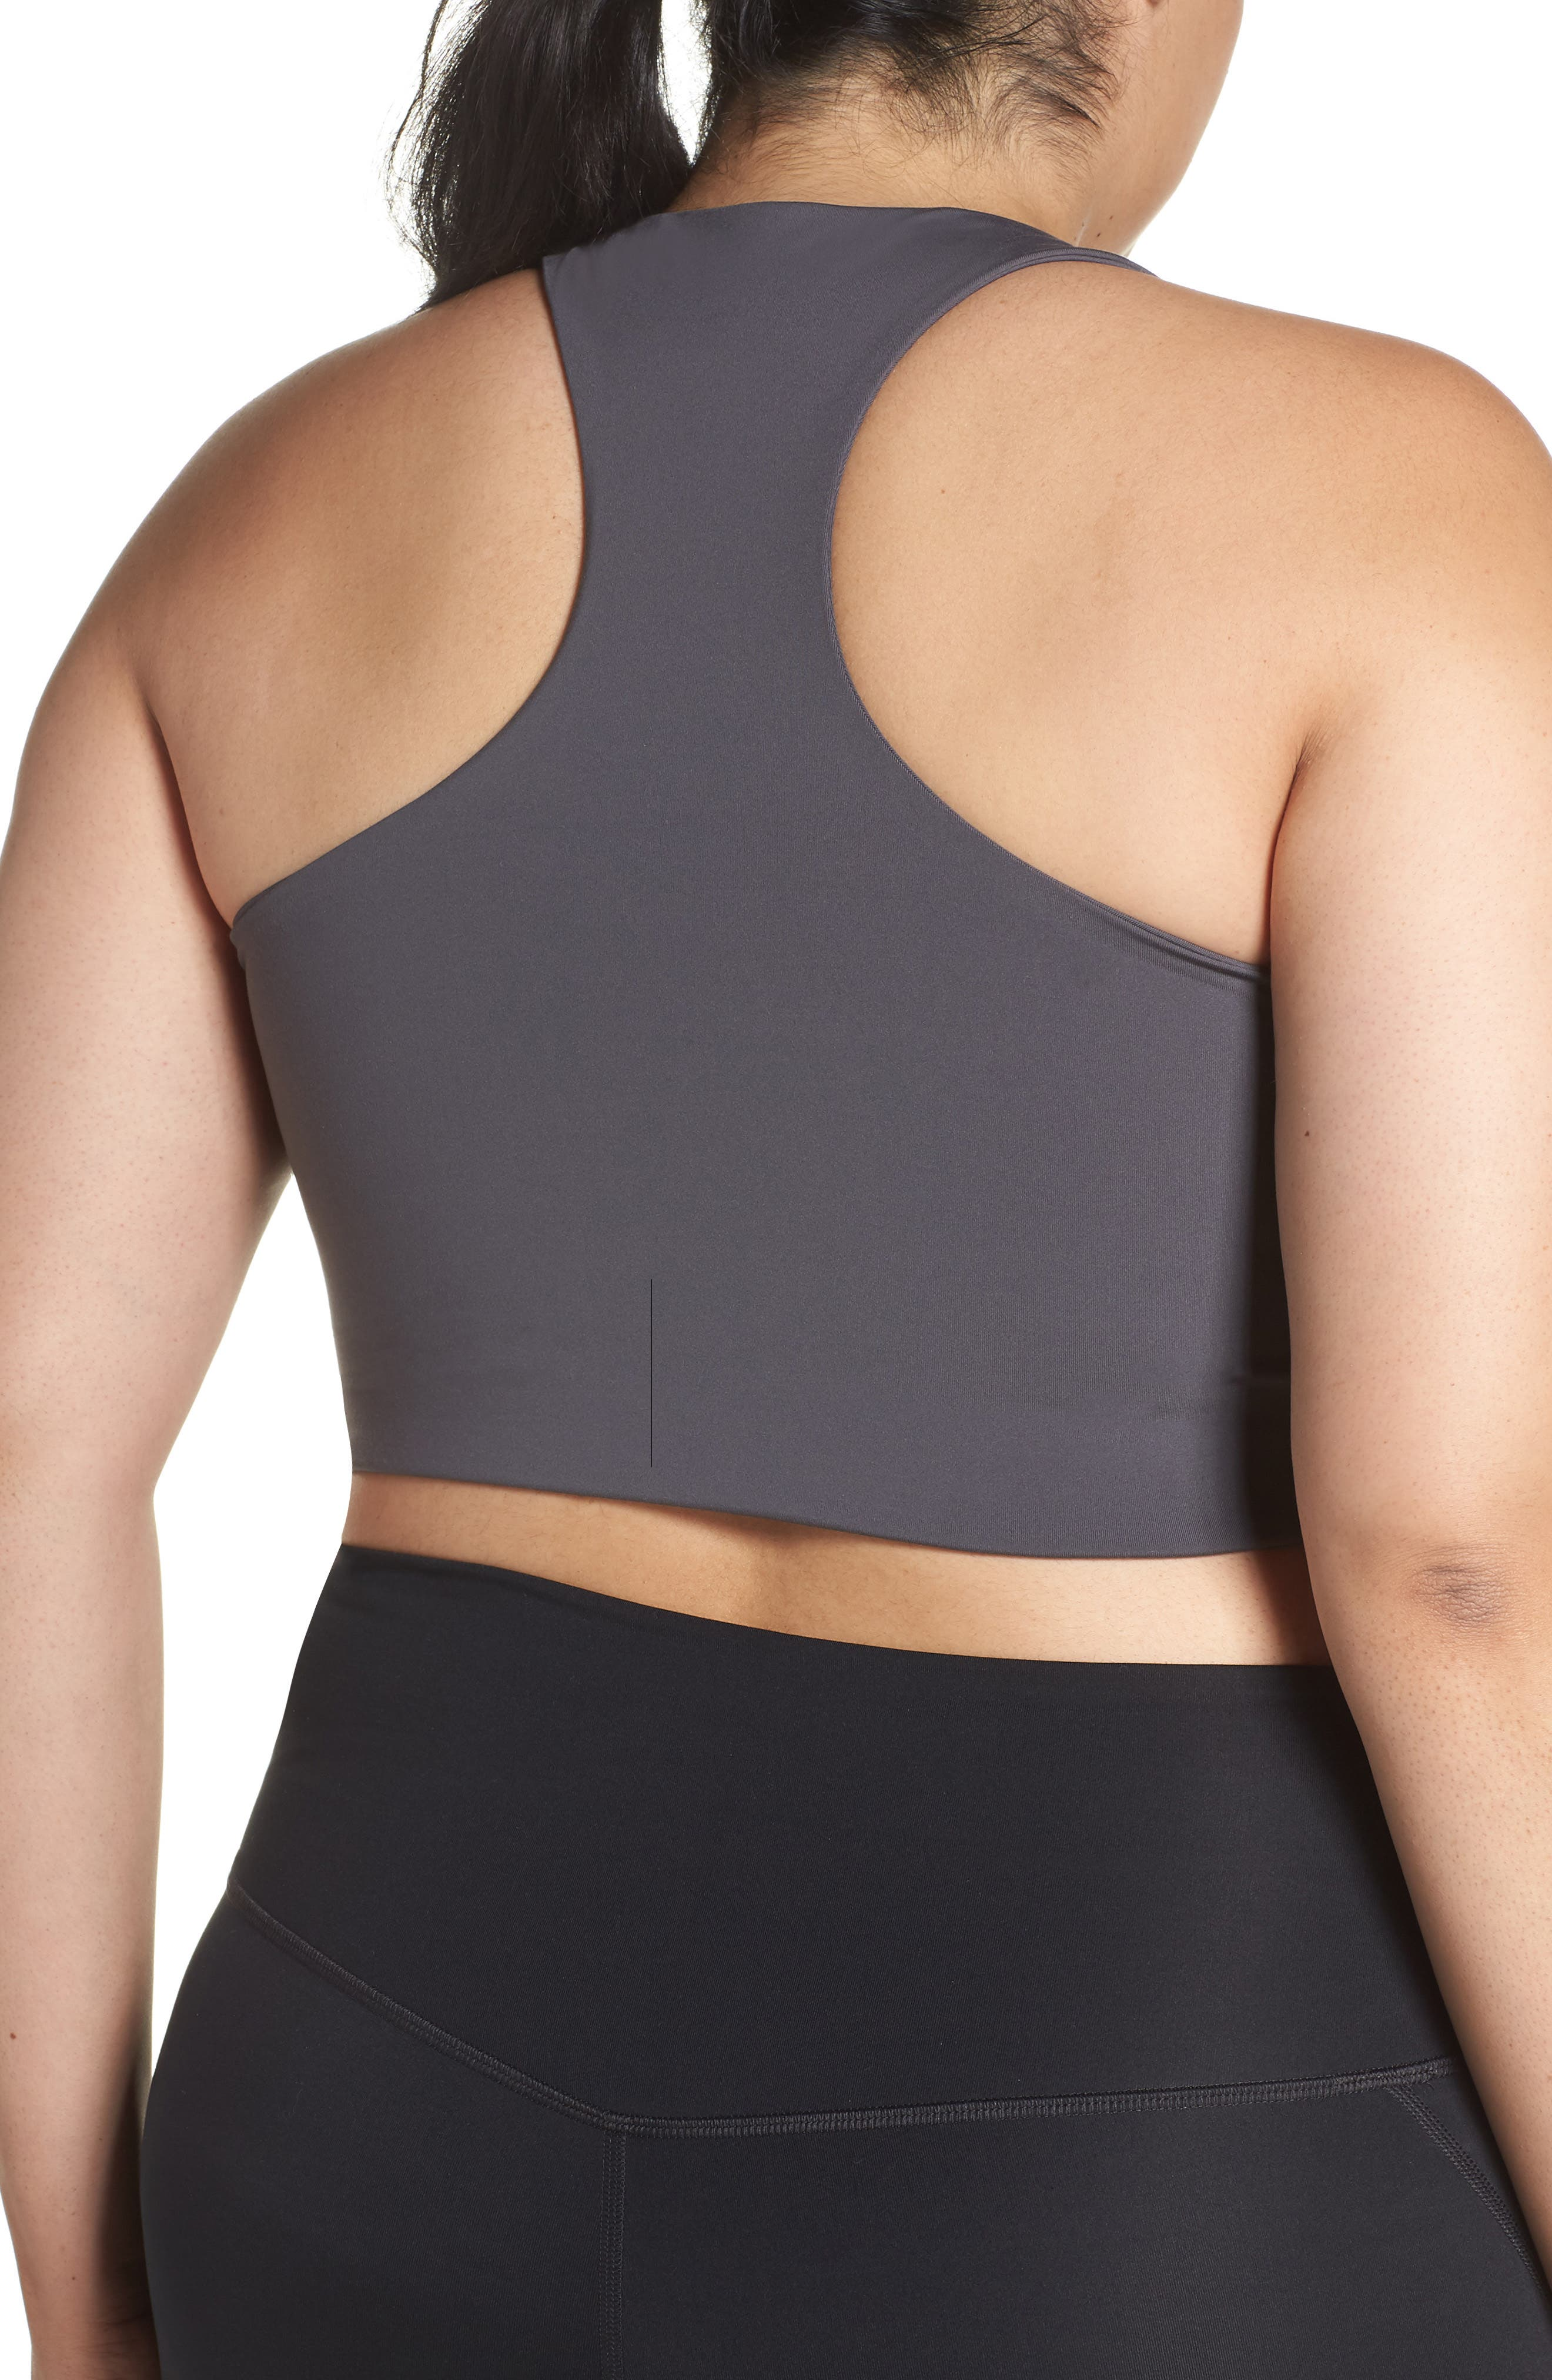 Paloma Sports Bra,                             Alternate thumbnail 12, color,                             SMOKE